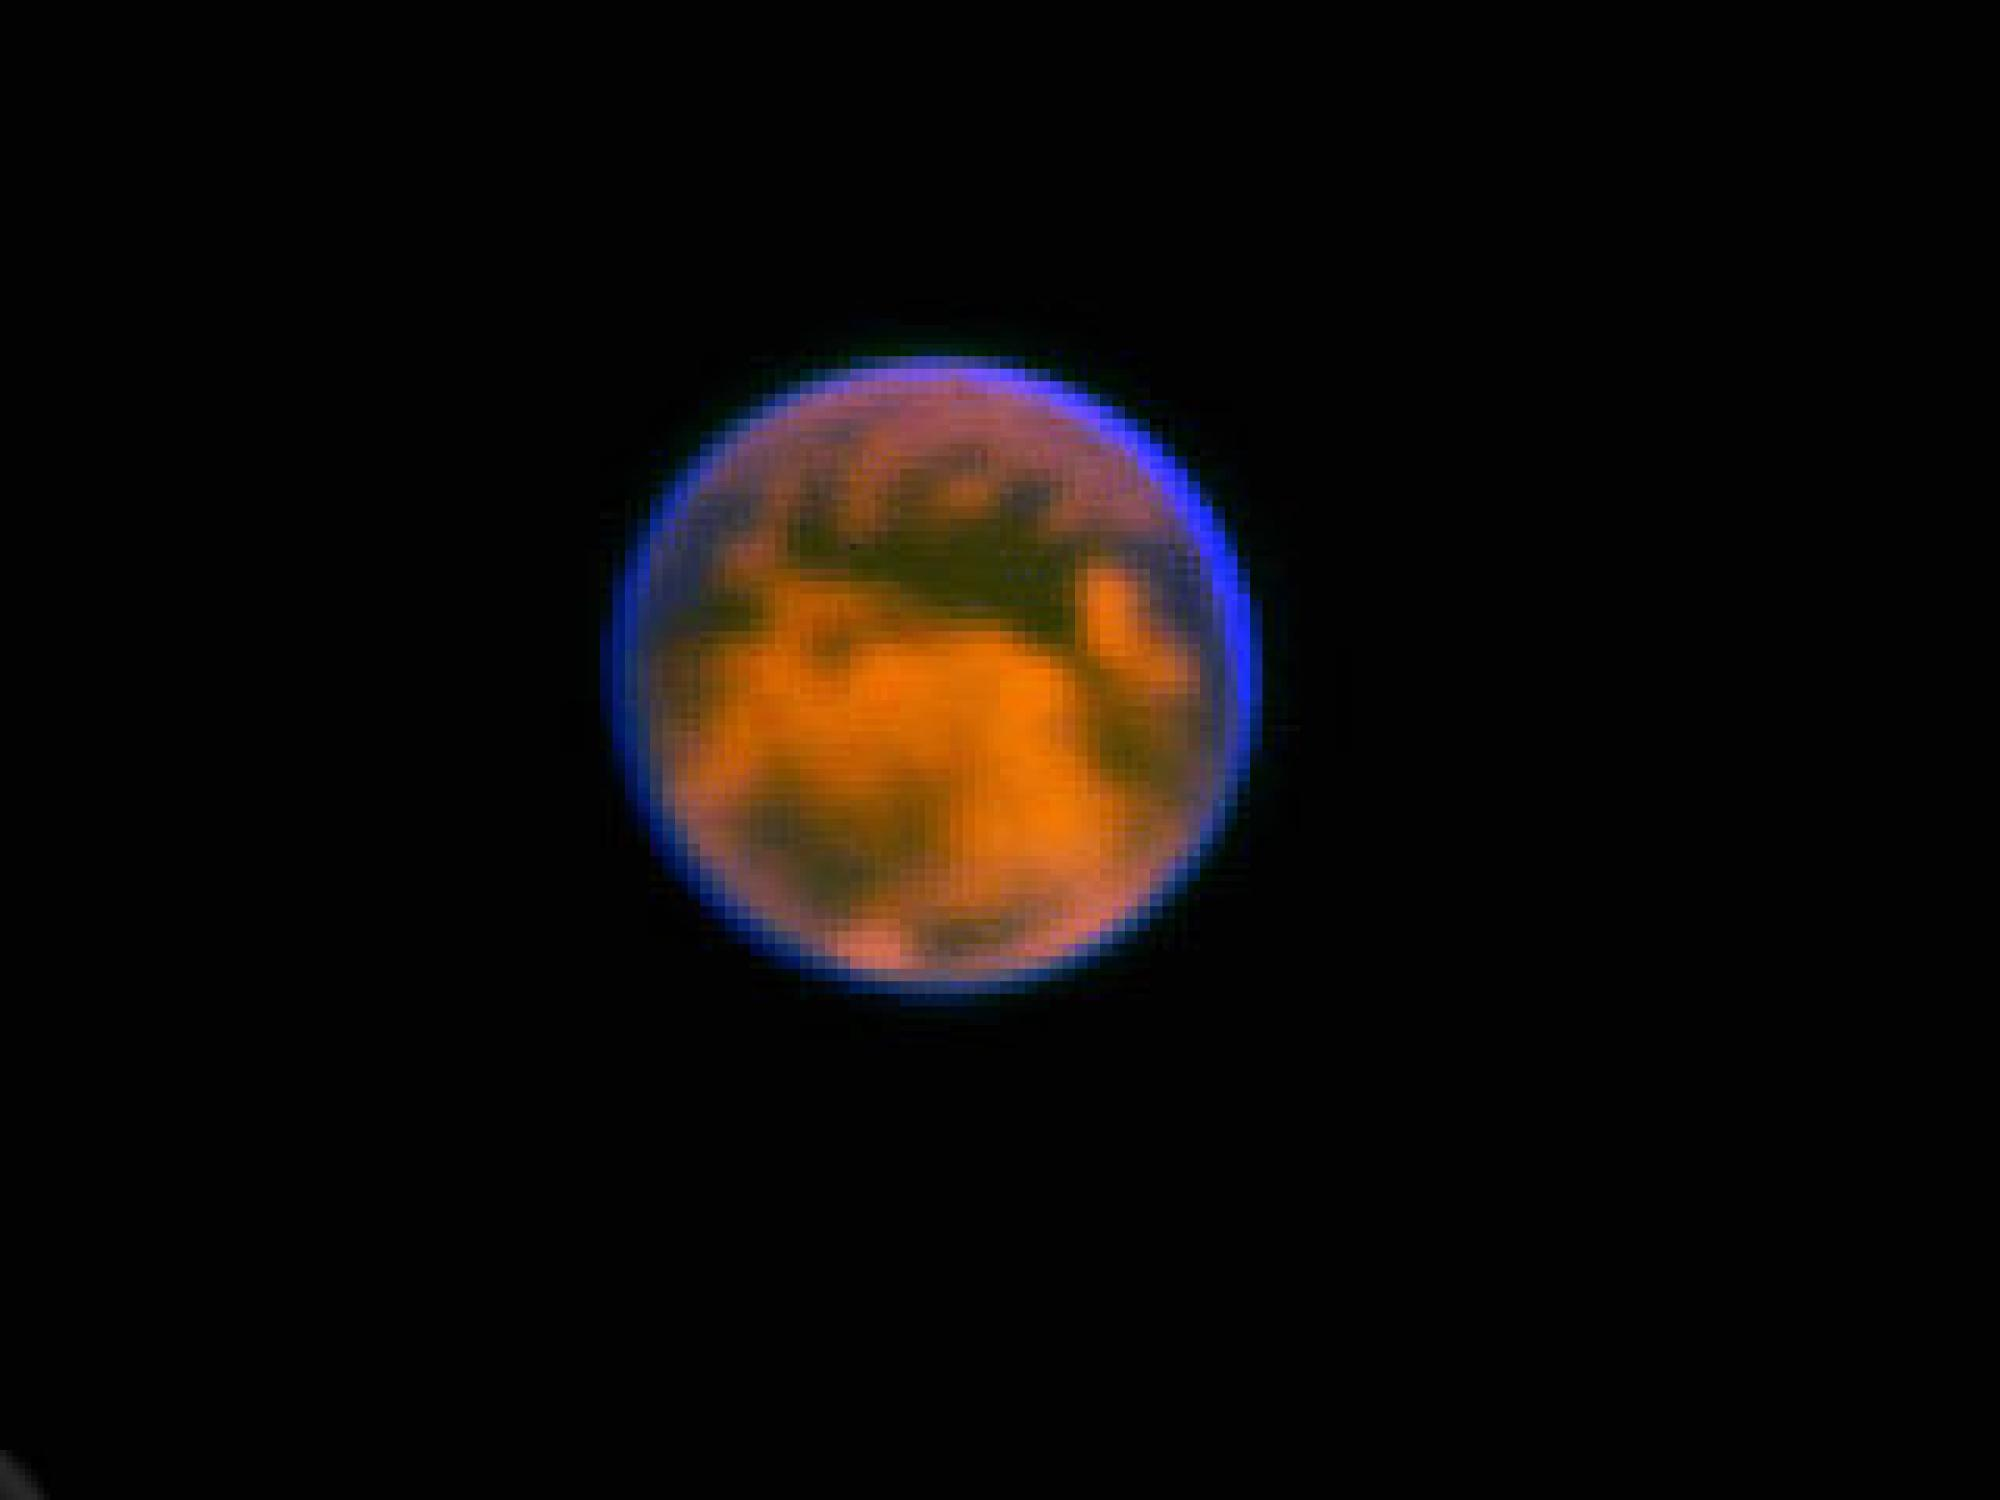 This extraordinary view of  Saturn's moon, Titan, was produced with an Earth-based telescope using a new kind of camera developed by UA astronomer Laird Close. Titan is about 800 million miles away. The resolution of this image is 360 kilometers, abo